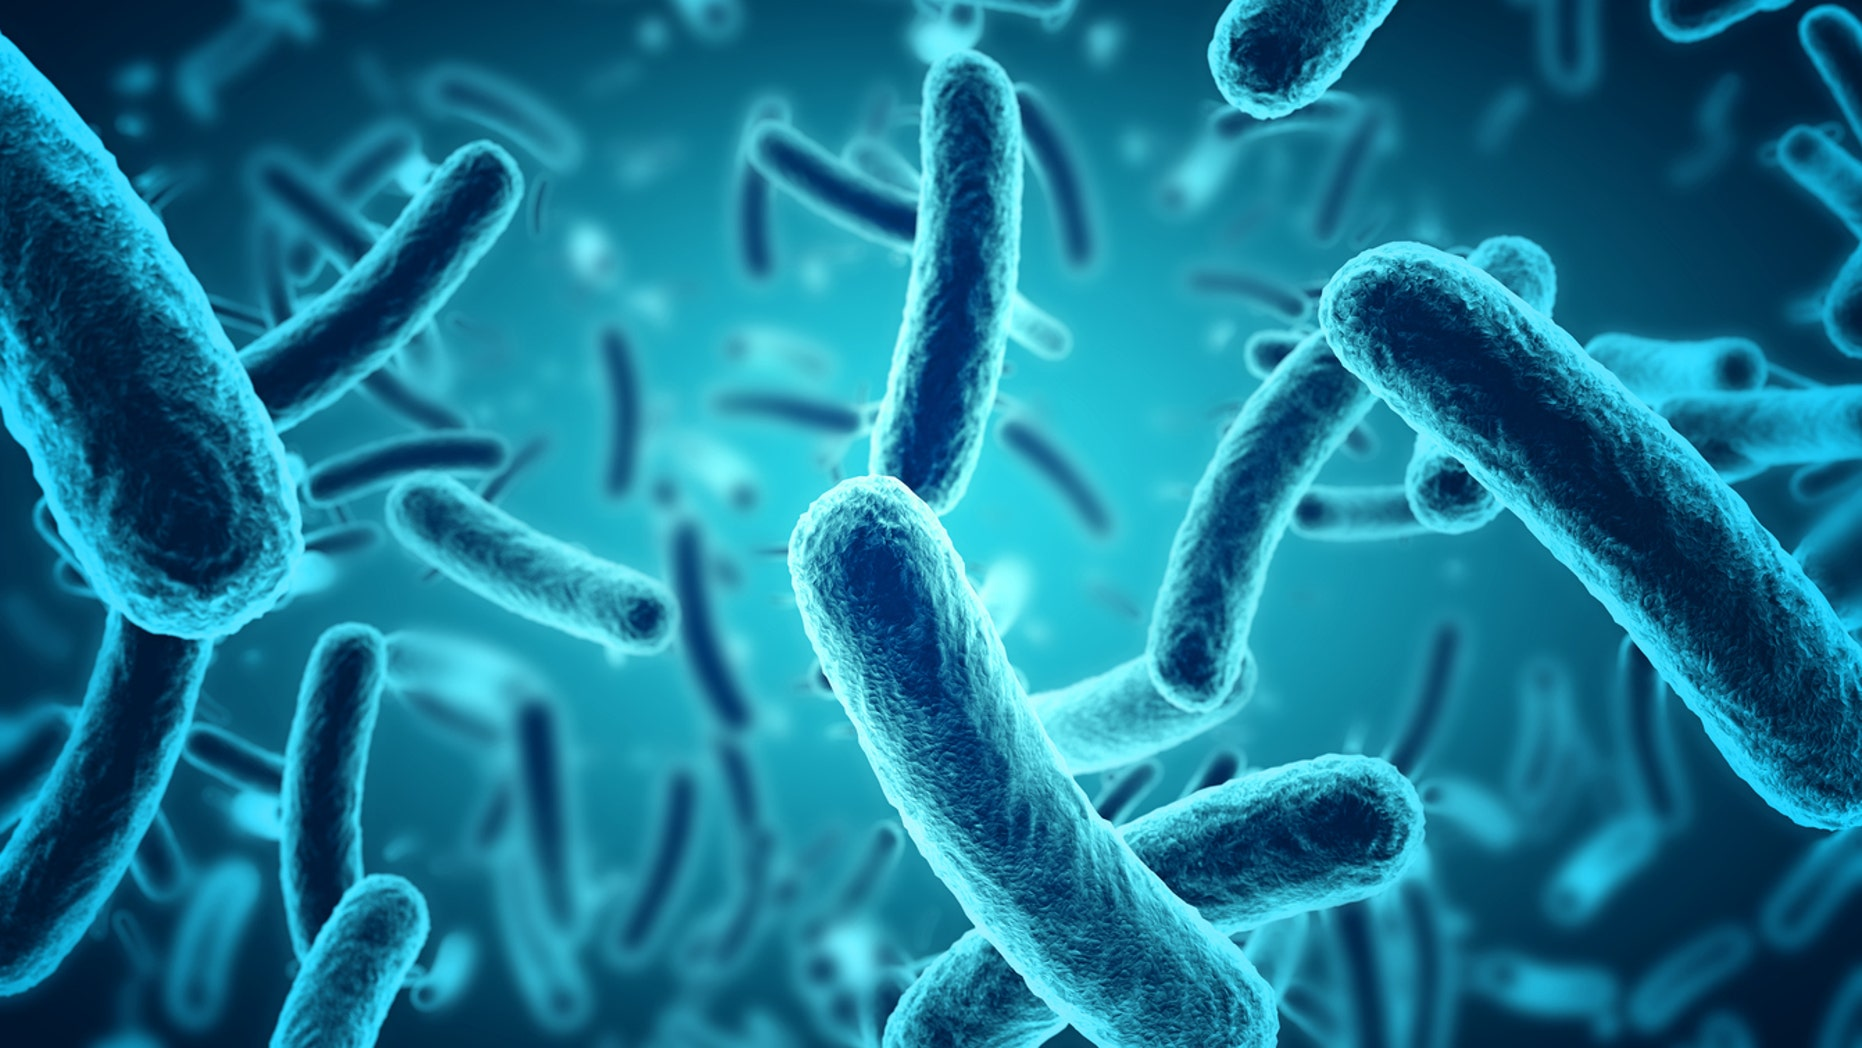 There were 94,530 human cases of salmonellosis reported in the EU in 2016.